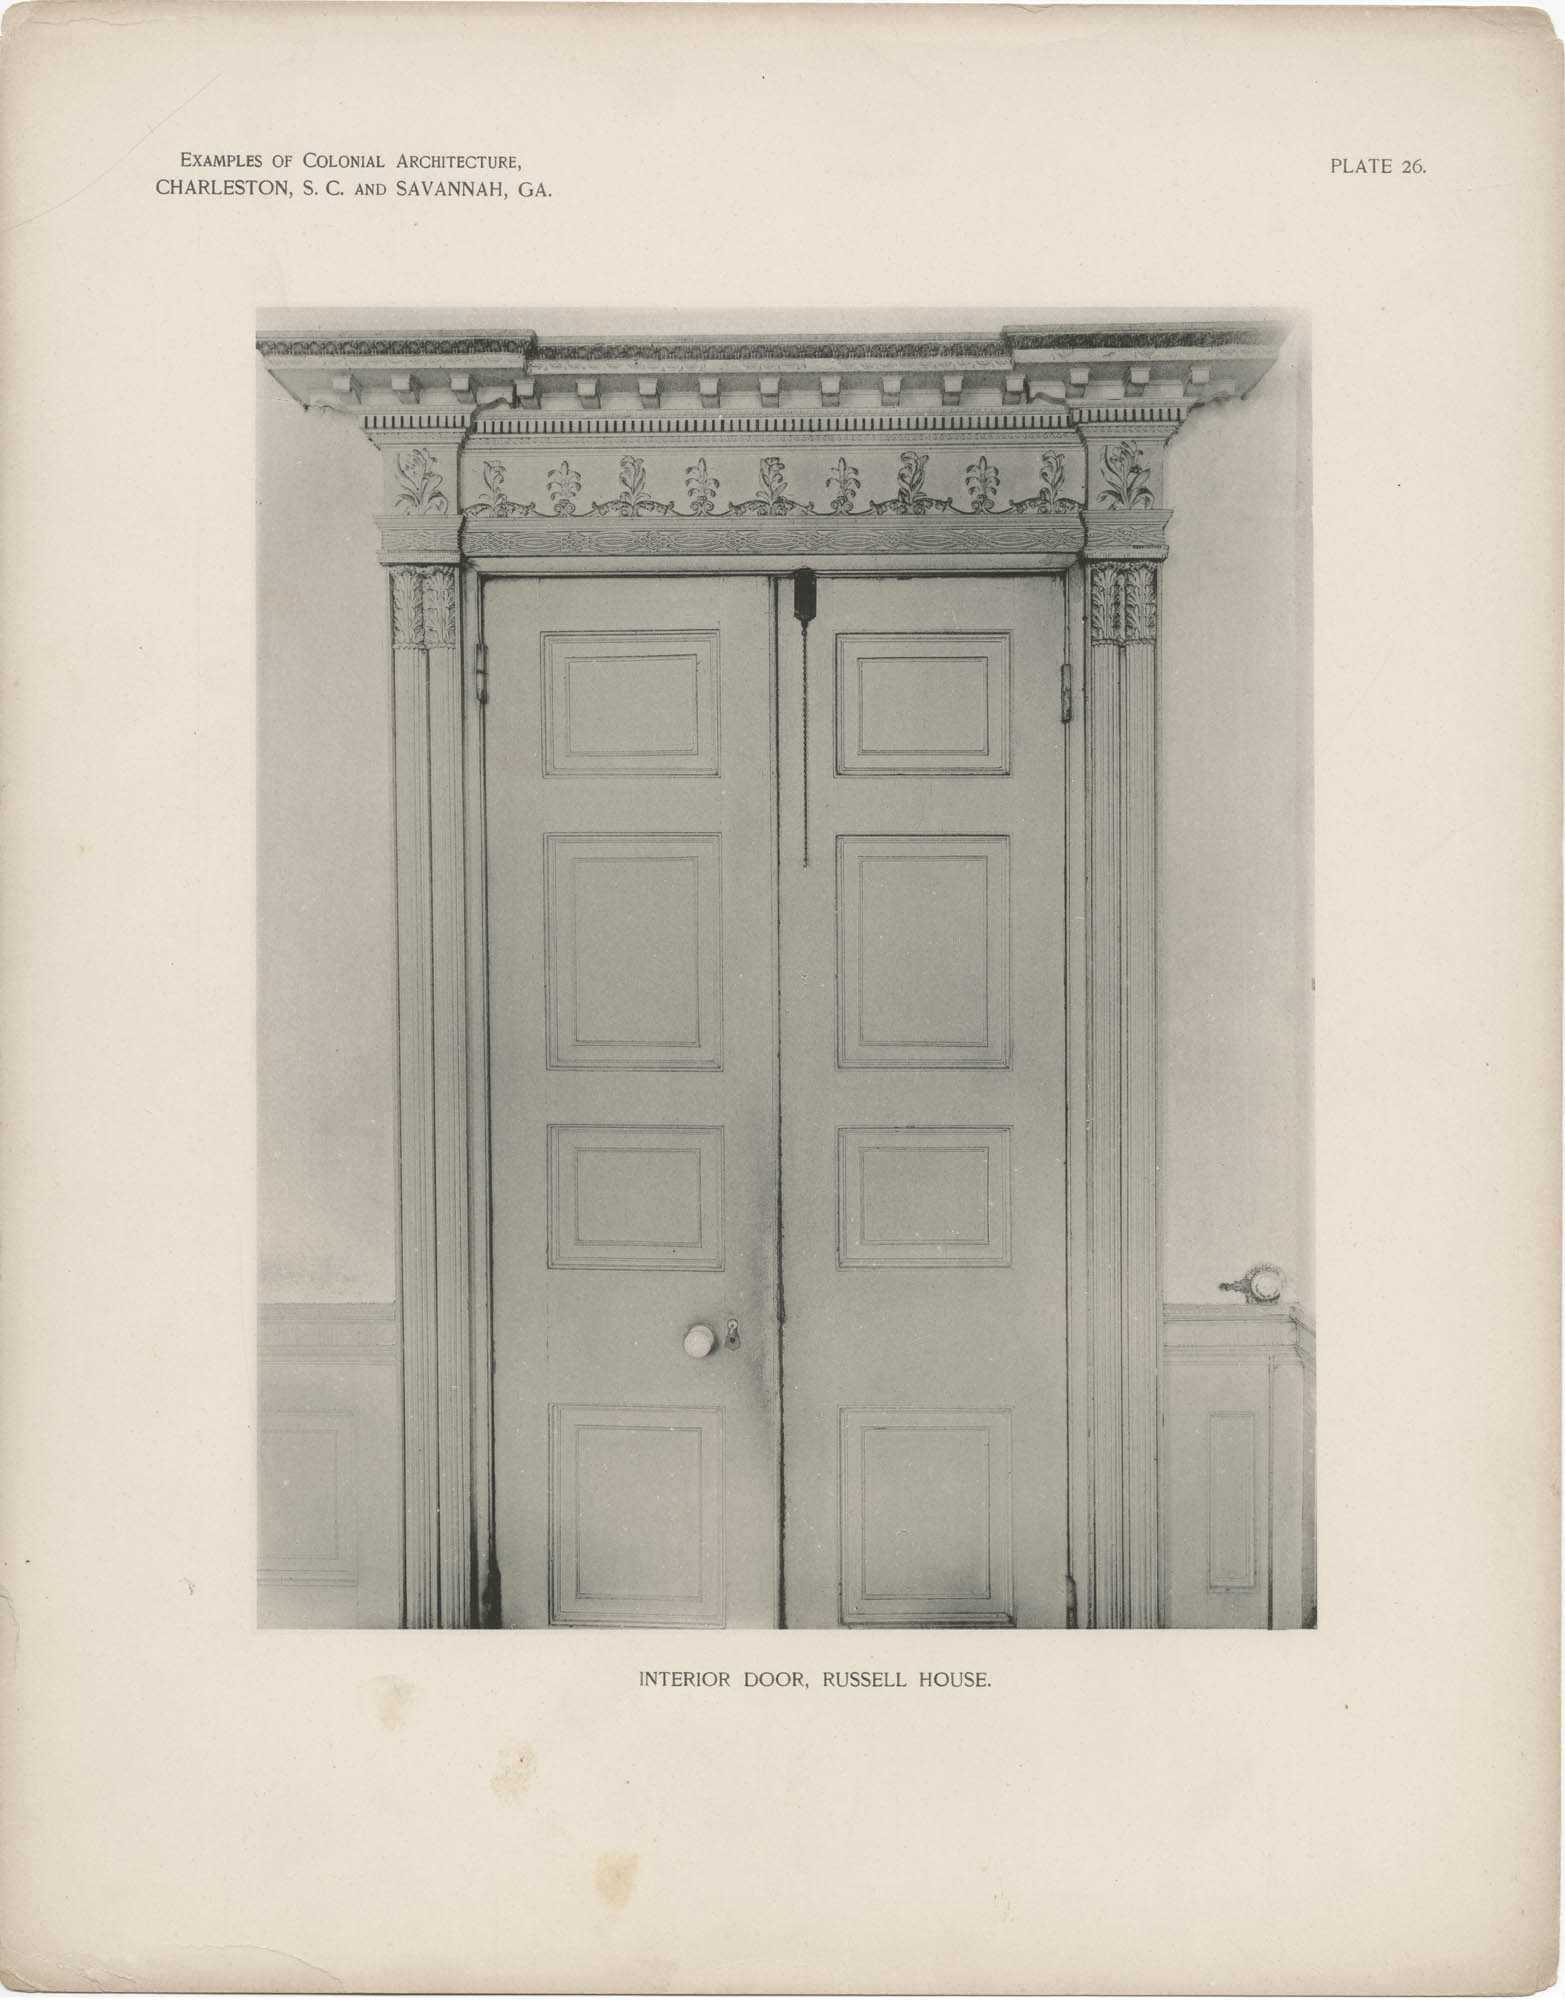 Plate 26: Interior Door, Russell House